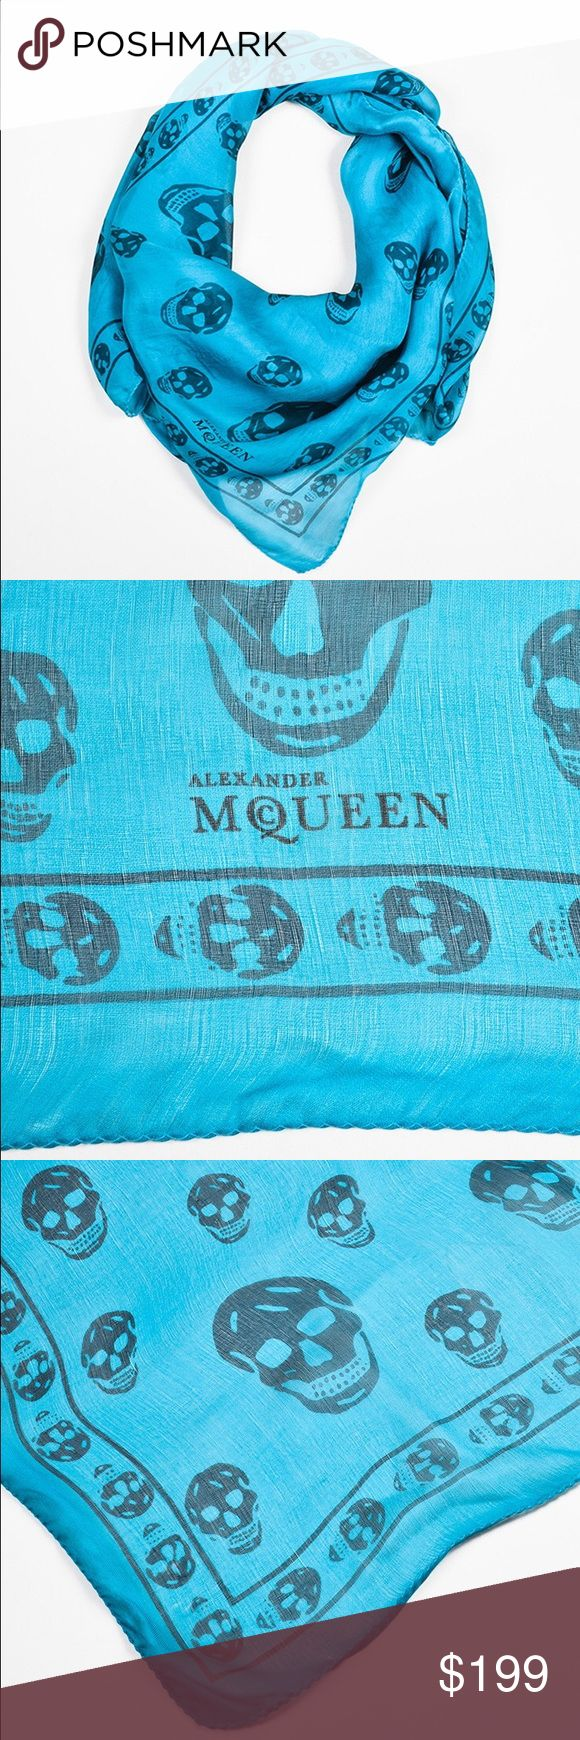 Alexander McQueen teal skull print silk scarf ALEXANDER MCQUEEN   TEAL AND DARK BLUE SKULL PRINT SCARF Iconic Alexander McQueen skull scarf in a bright and fun teal hue. Navy blue pattern with a repeating border. A perfect choice for adding a pop of color and a touch of edge to a spring or summer ensemble. Square shape with rolled edges. Brand name printed at the corner.  Missing fabrication and care tags. Minor loose threads around the edges. No other visible signs of wear and tear…